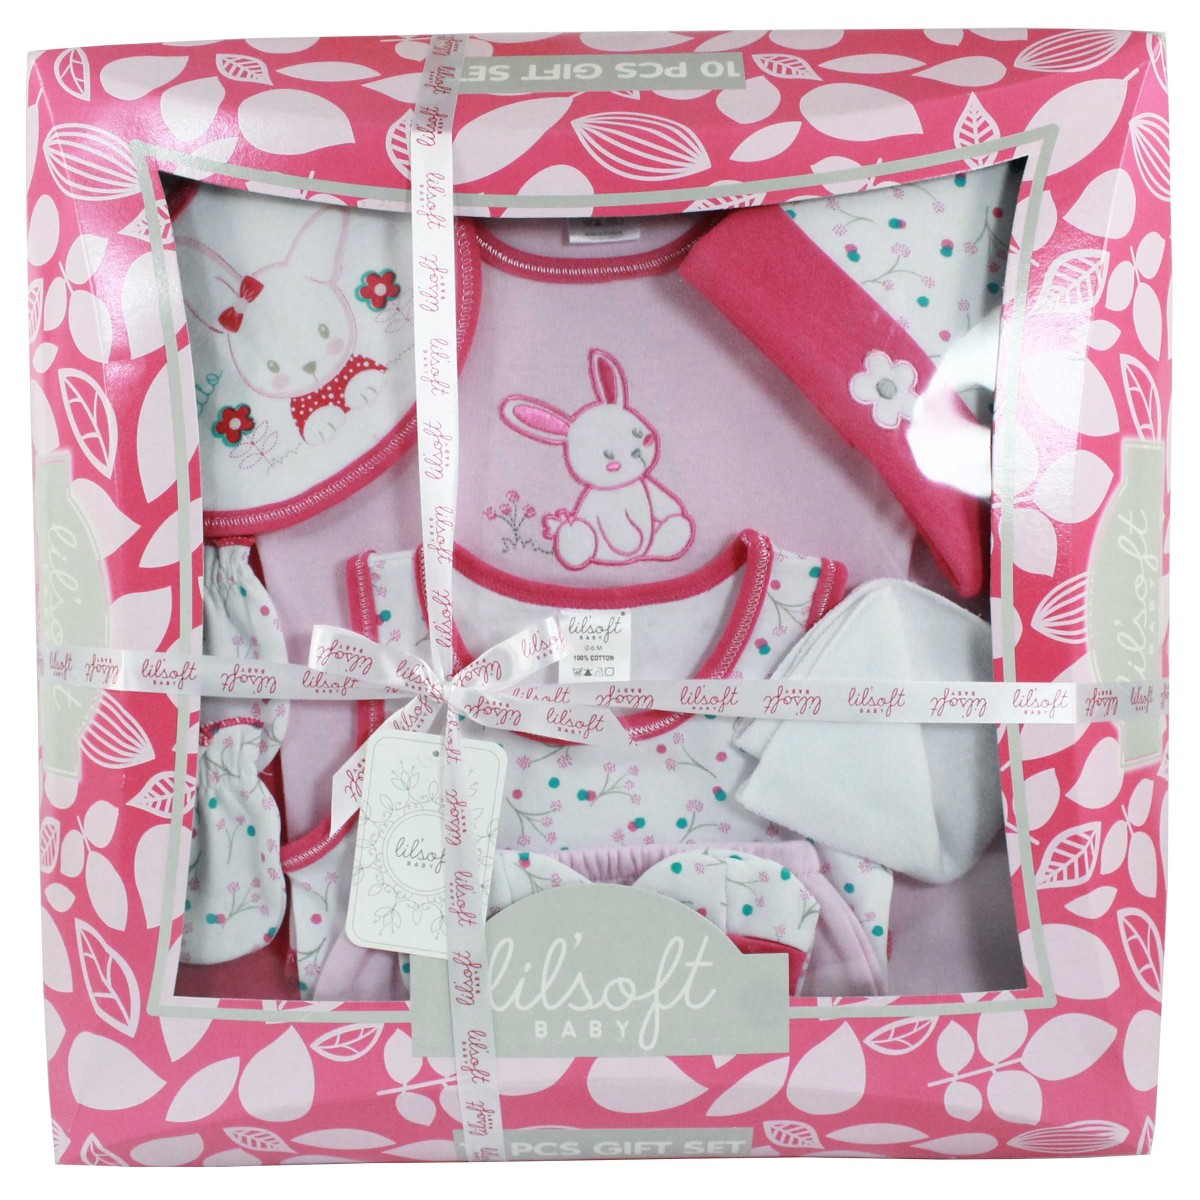 Baby Gift Set 11 Pieces : Baby bodysuit pieces gift set for lilsoft